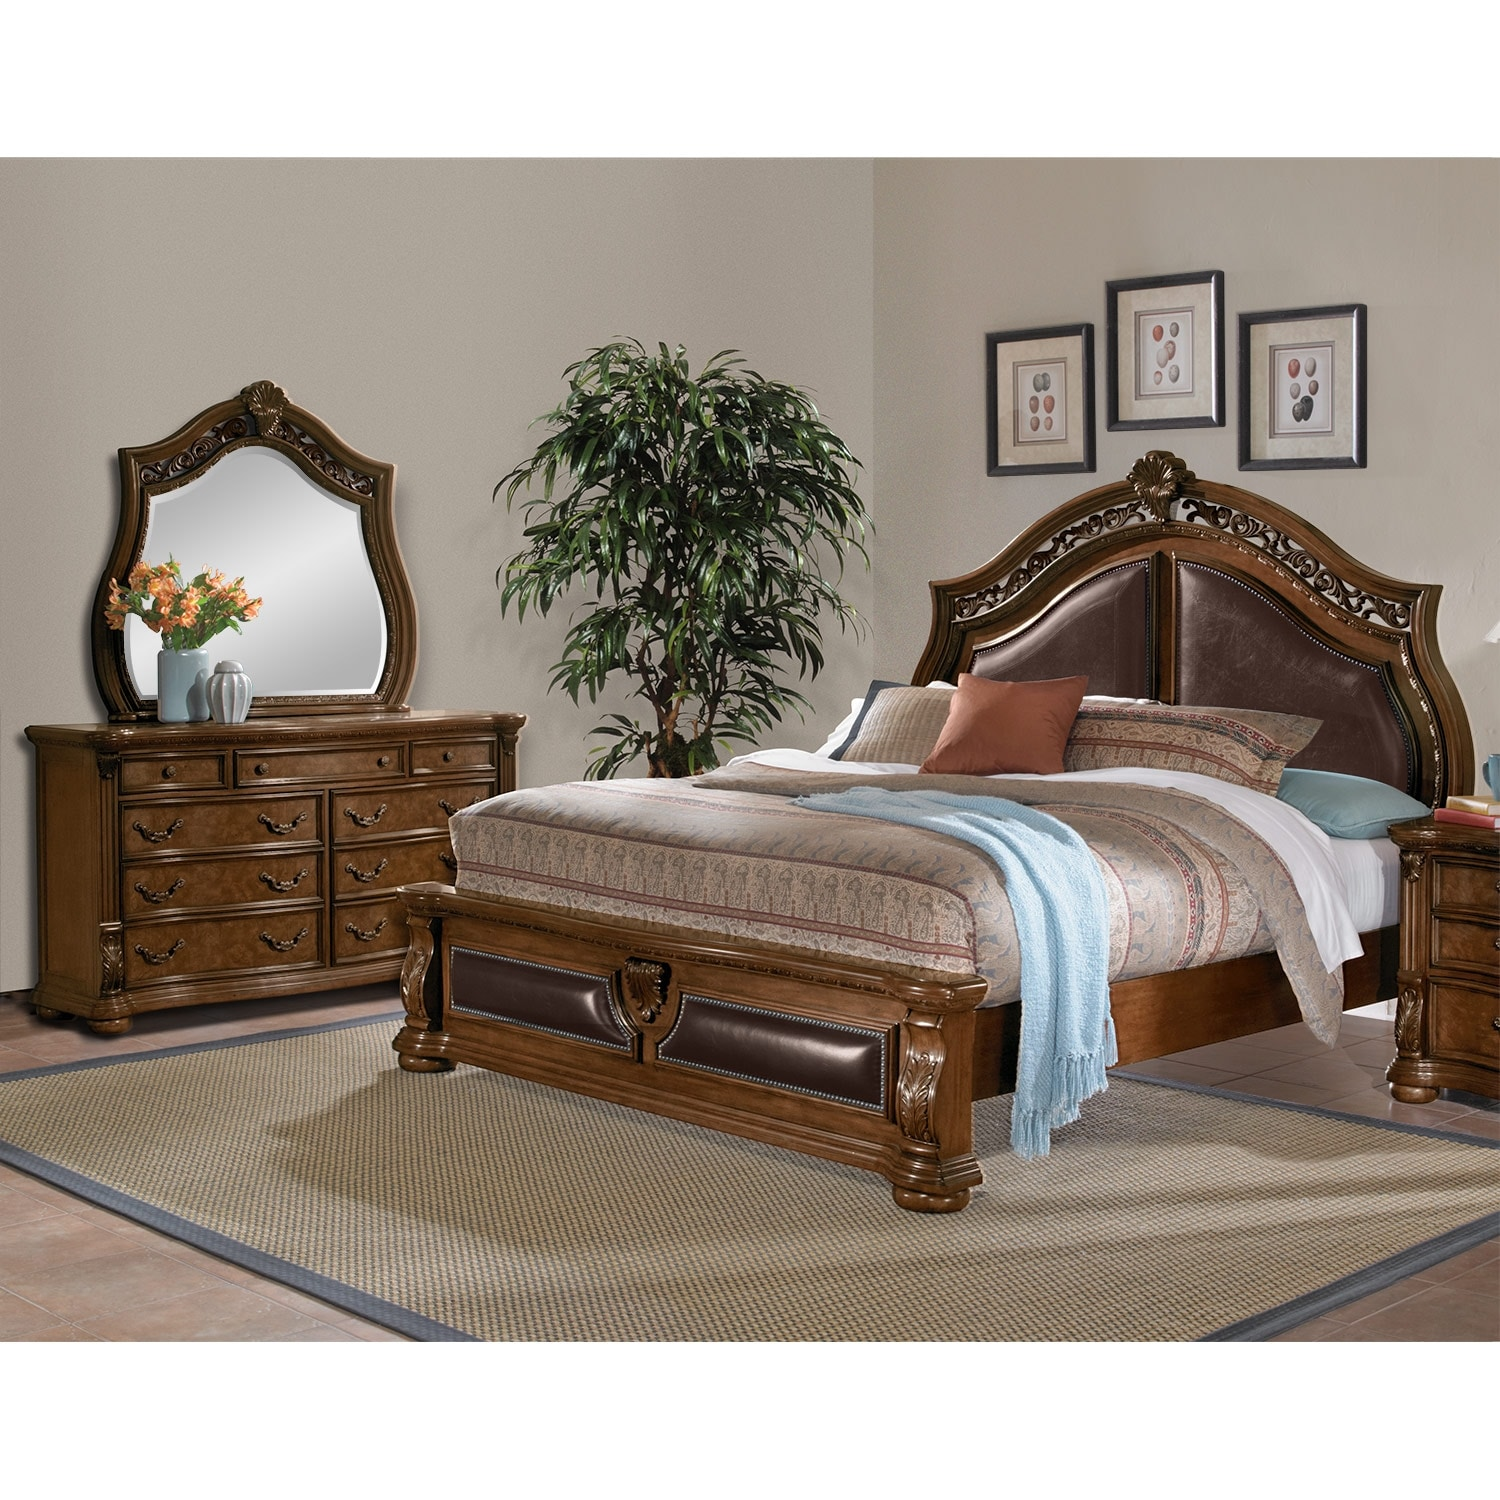 Bedroom Furniture   Morocco 5 Piece Queen Upholstered Bedroom Set   Pecan